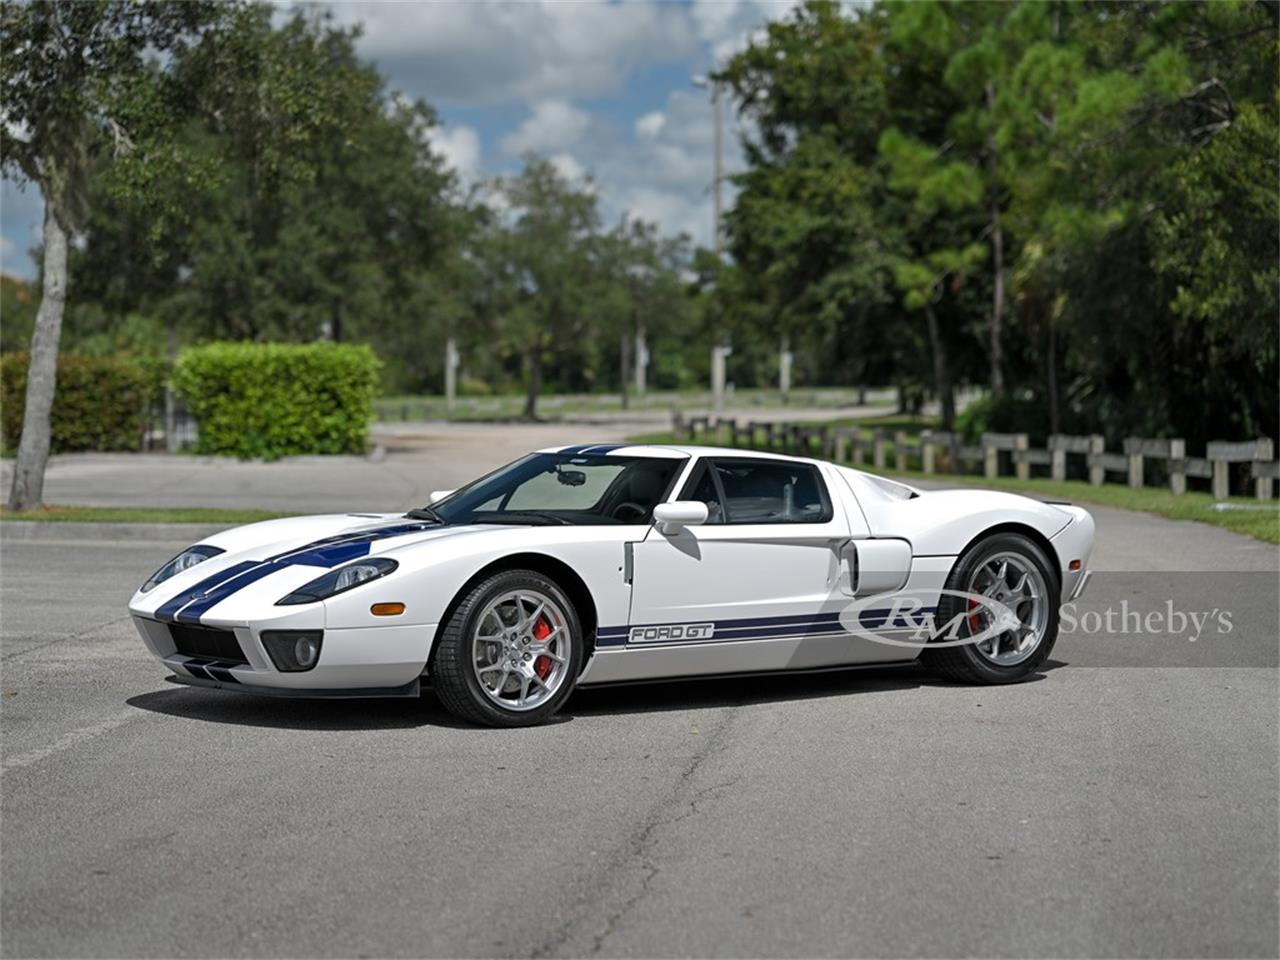 2005 Ford GT (CC-1410325) for sale in Hershey, Pennsylvania